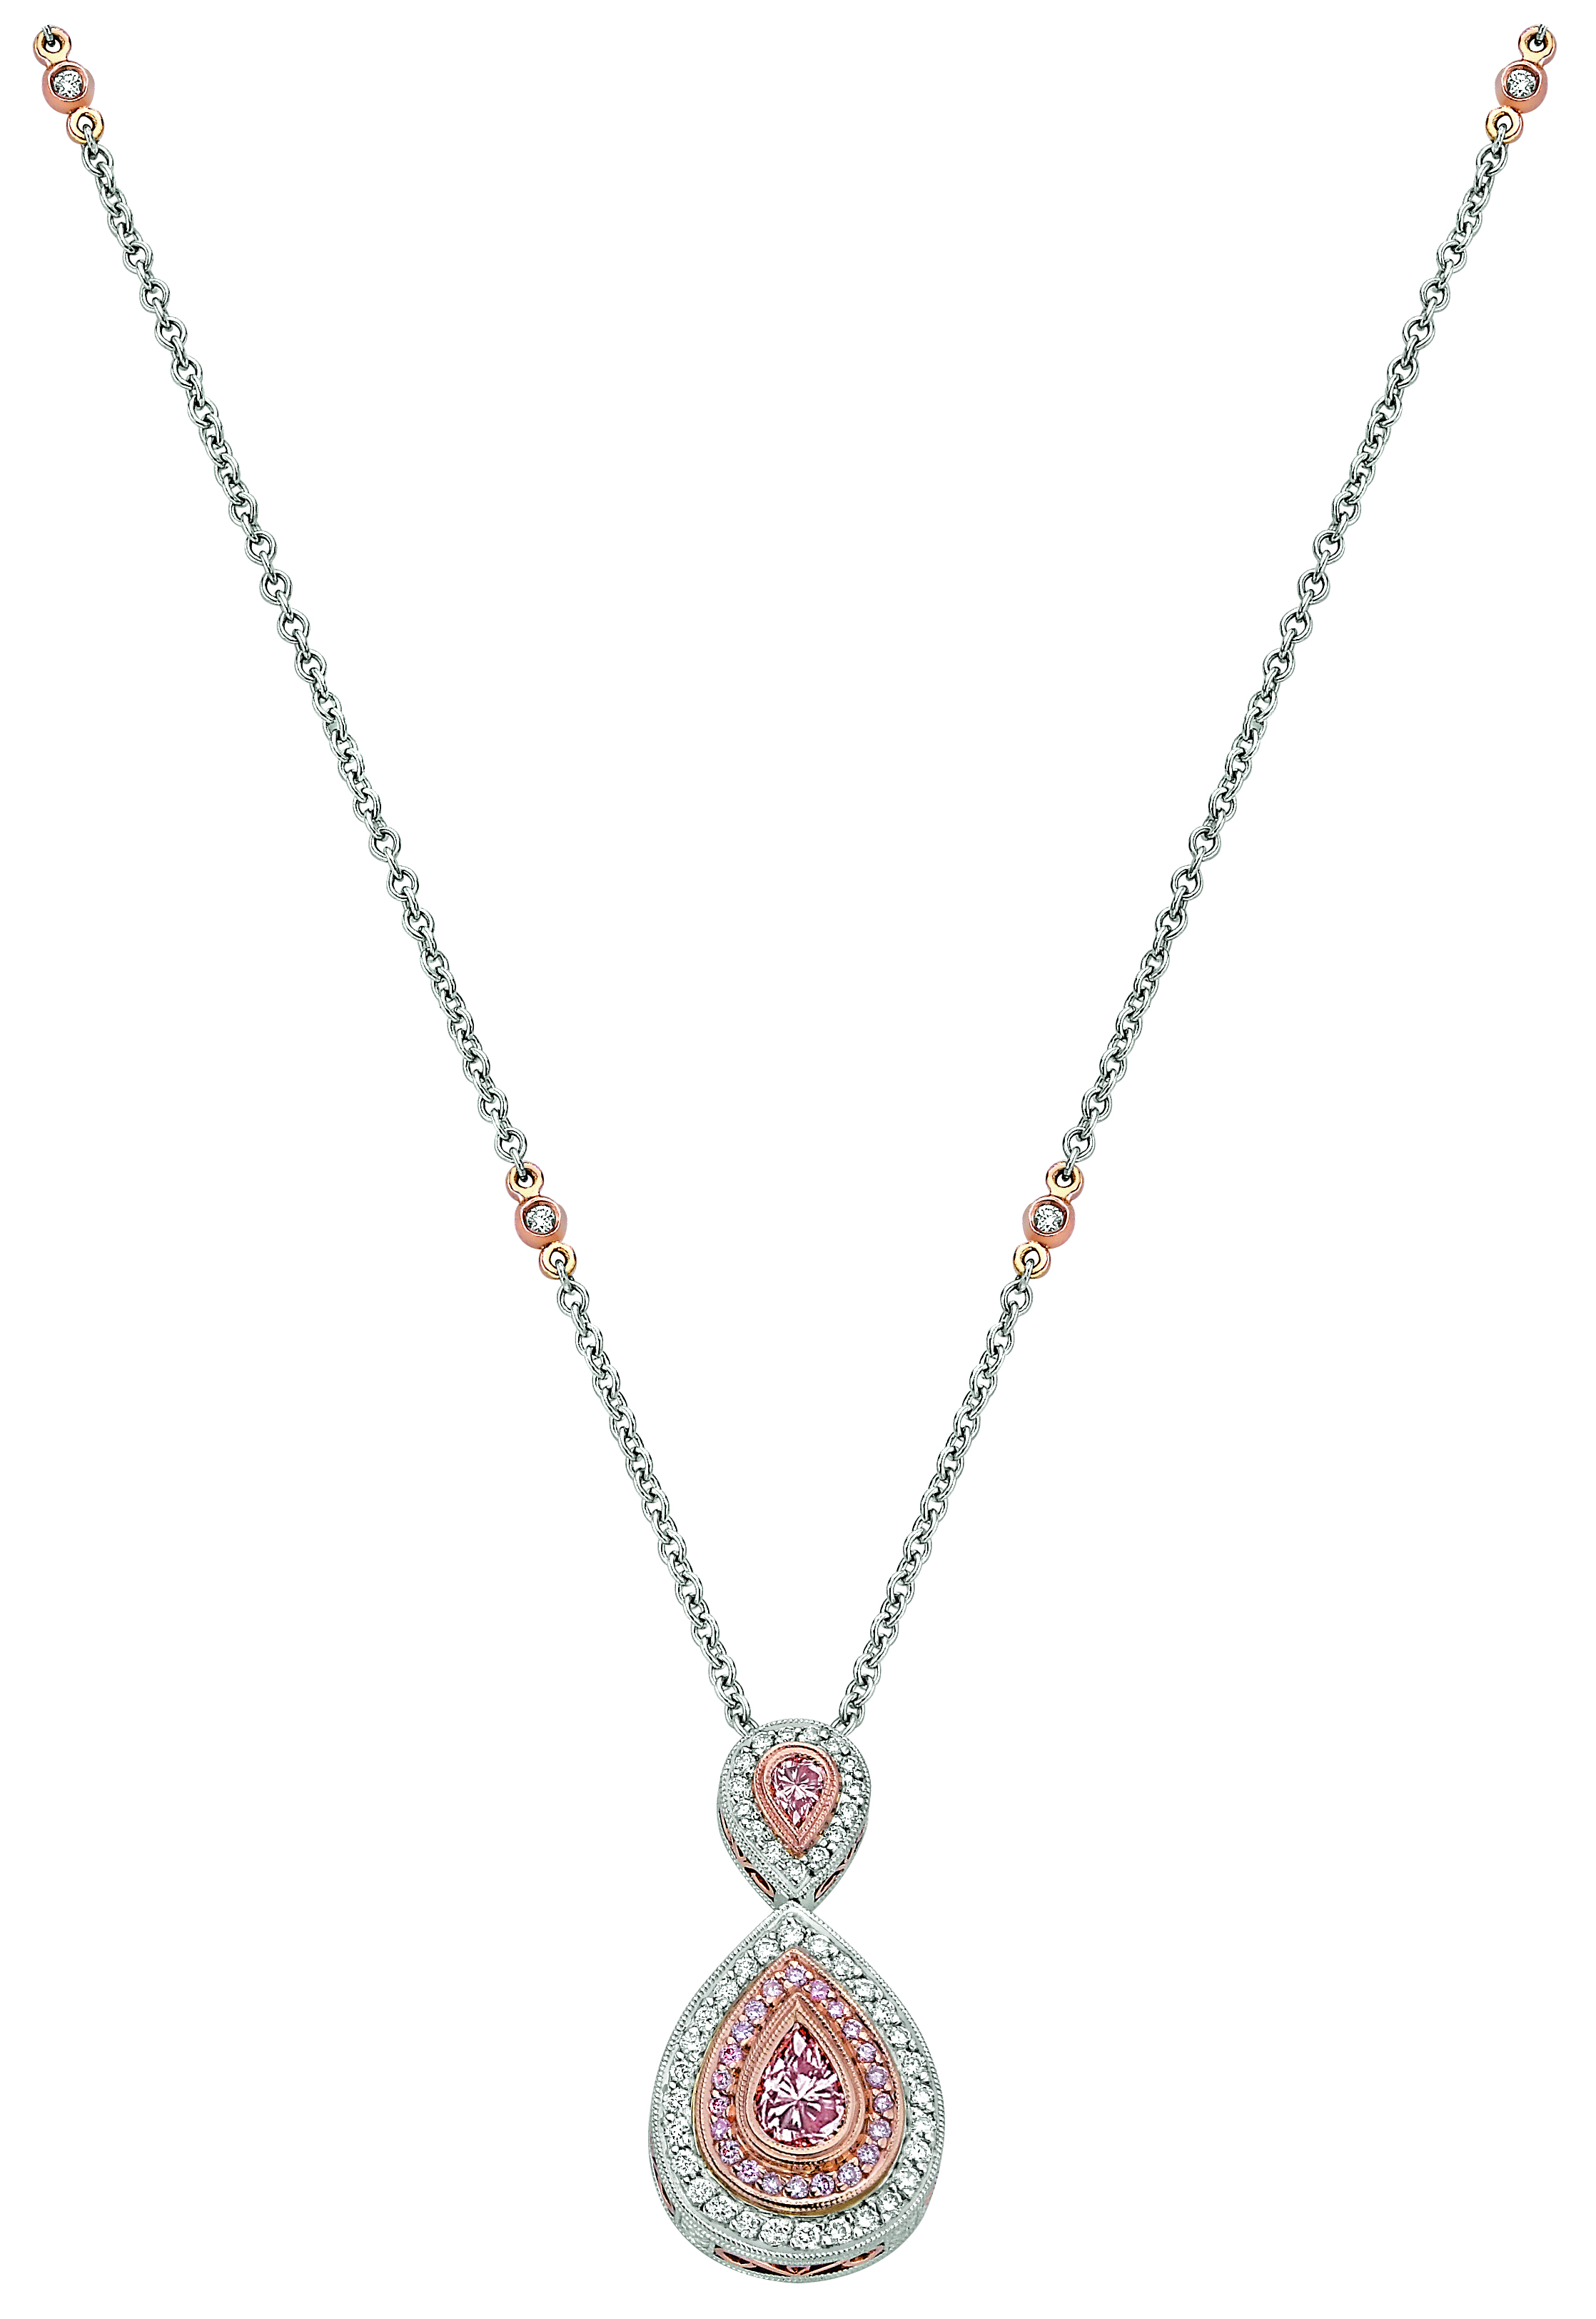 necklace rose pd color with barin pink pear michael diamond shaped natural and karat accented gold diamonds fancy